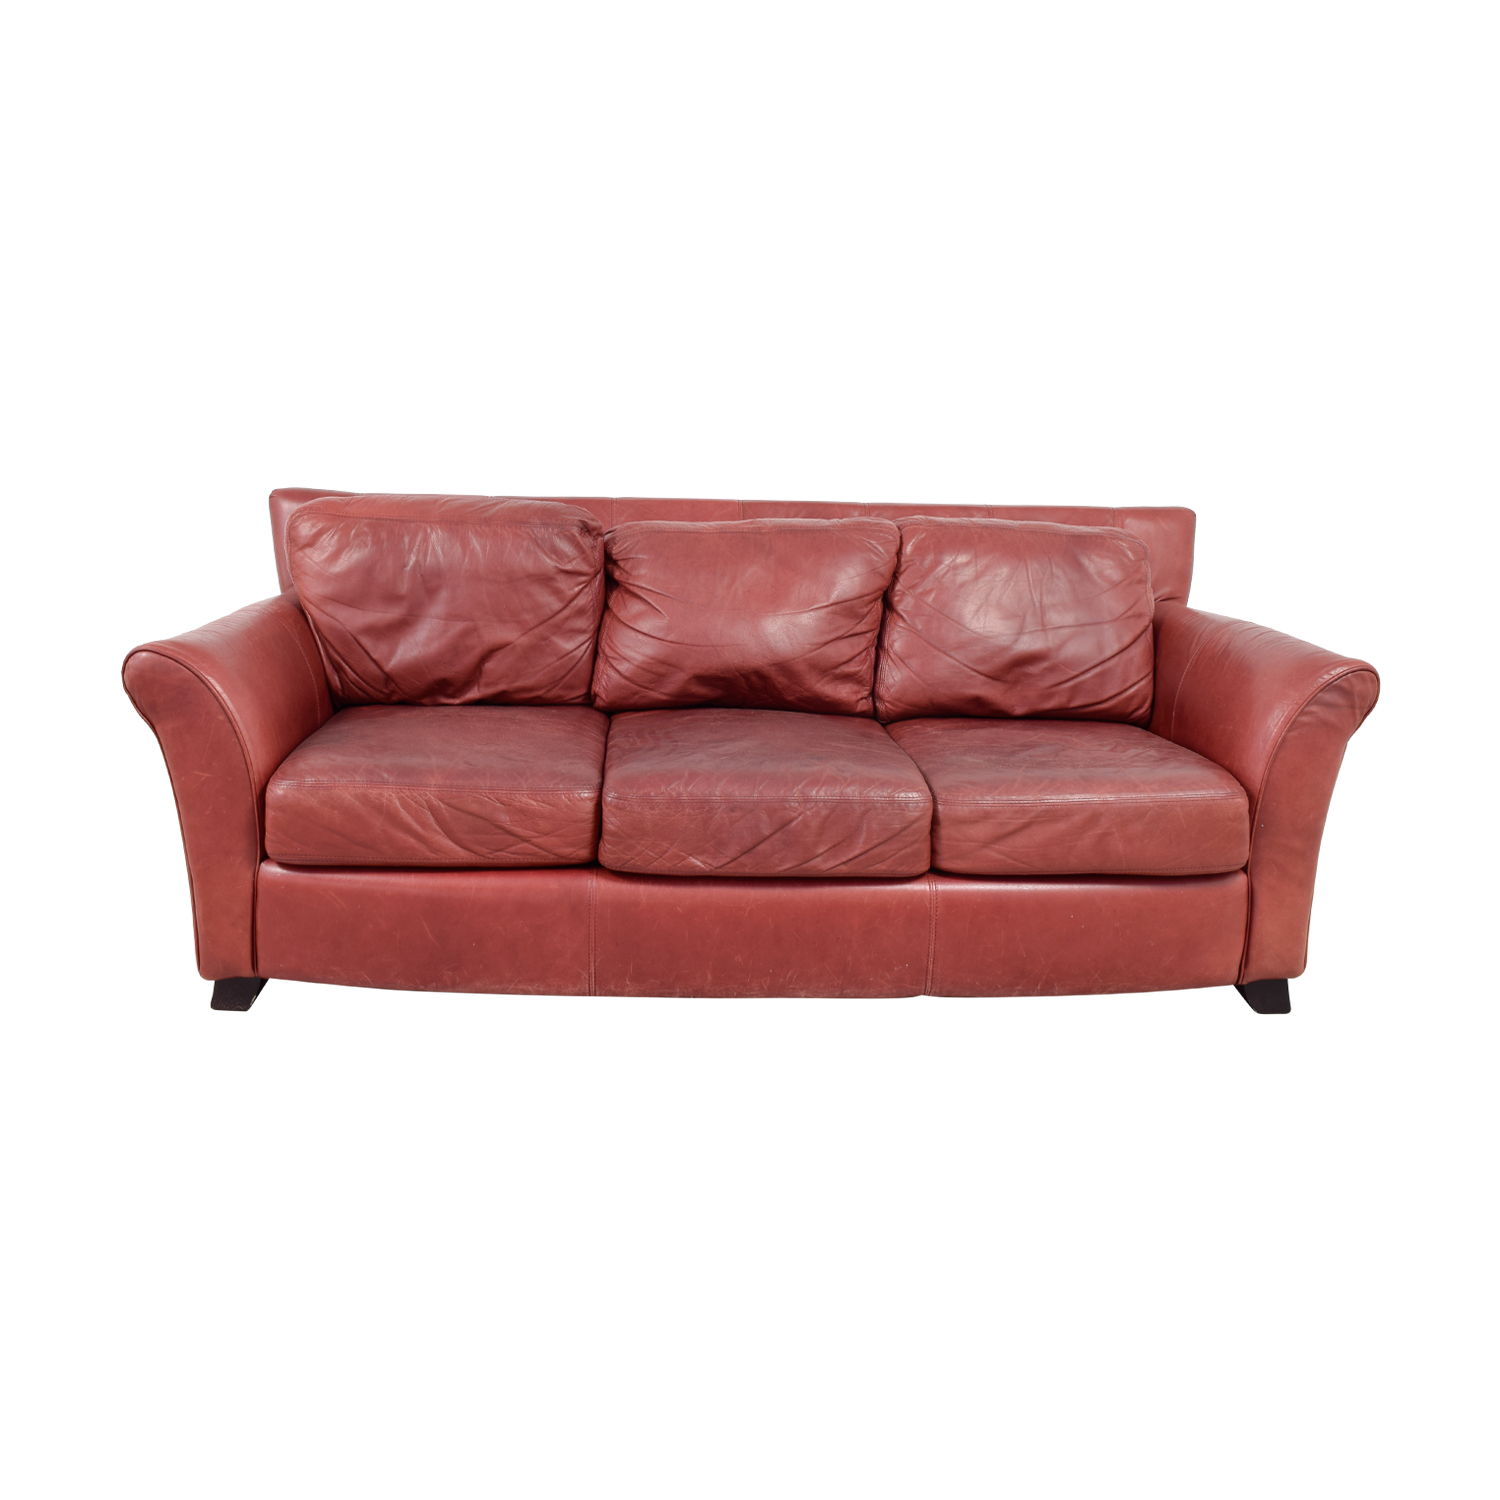 Palliser Palliser Red Leather Three-Cushion Sofa